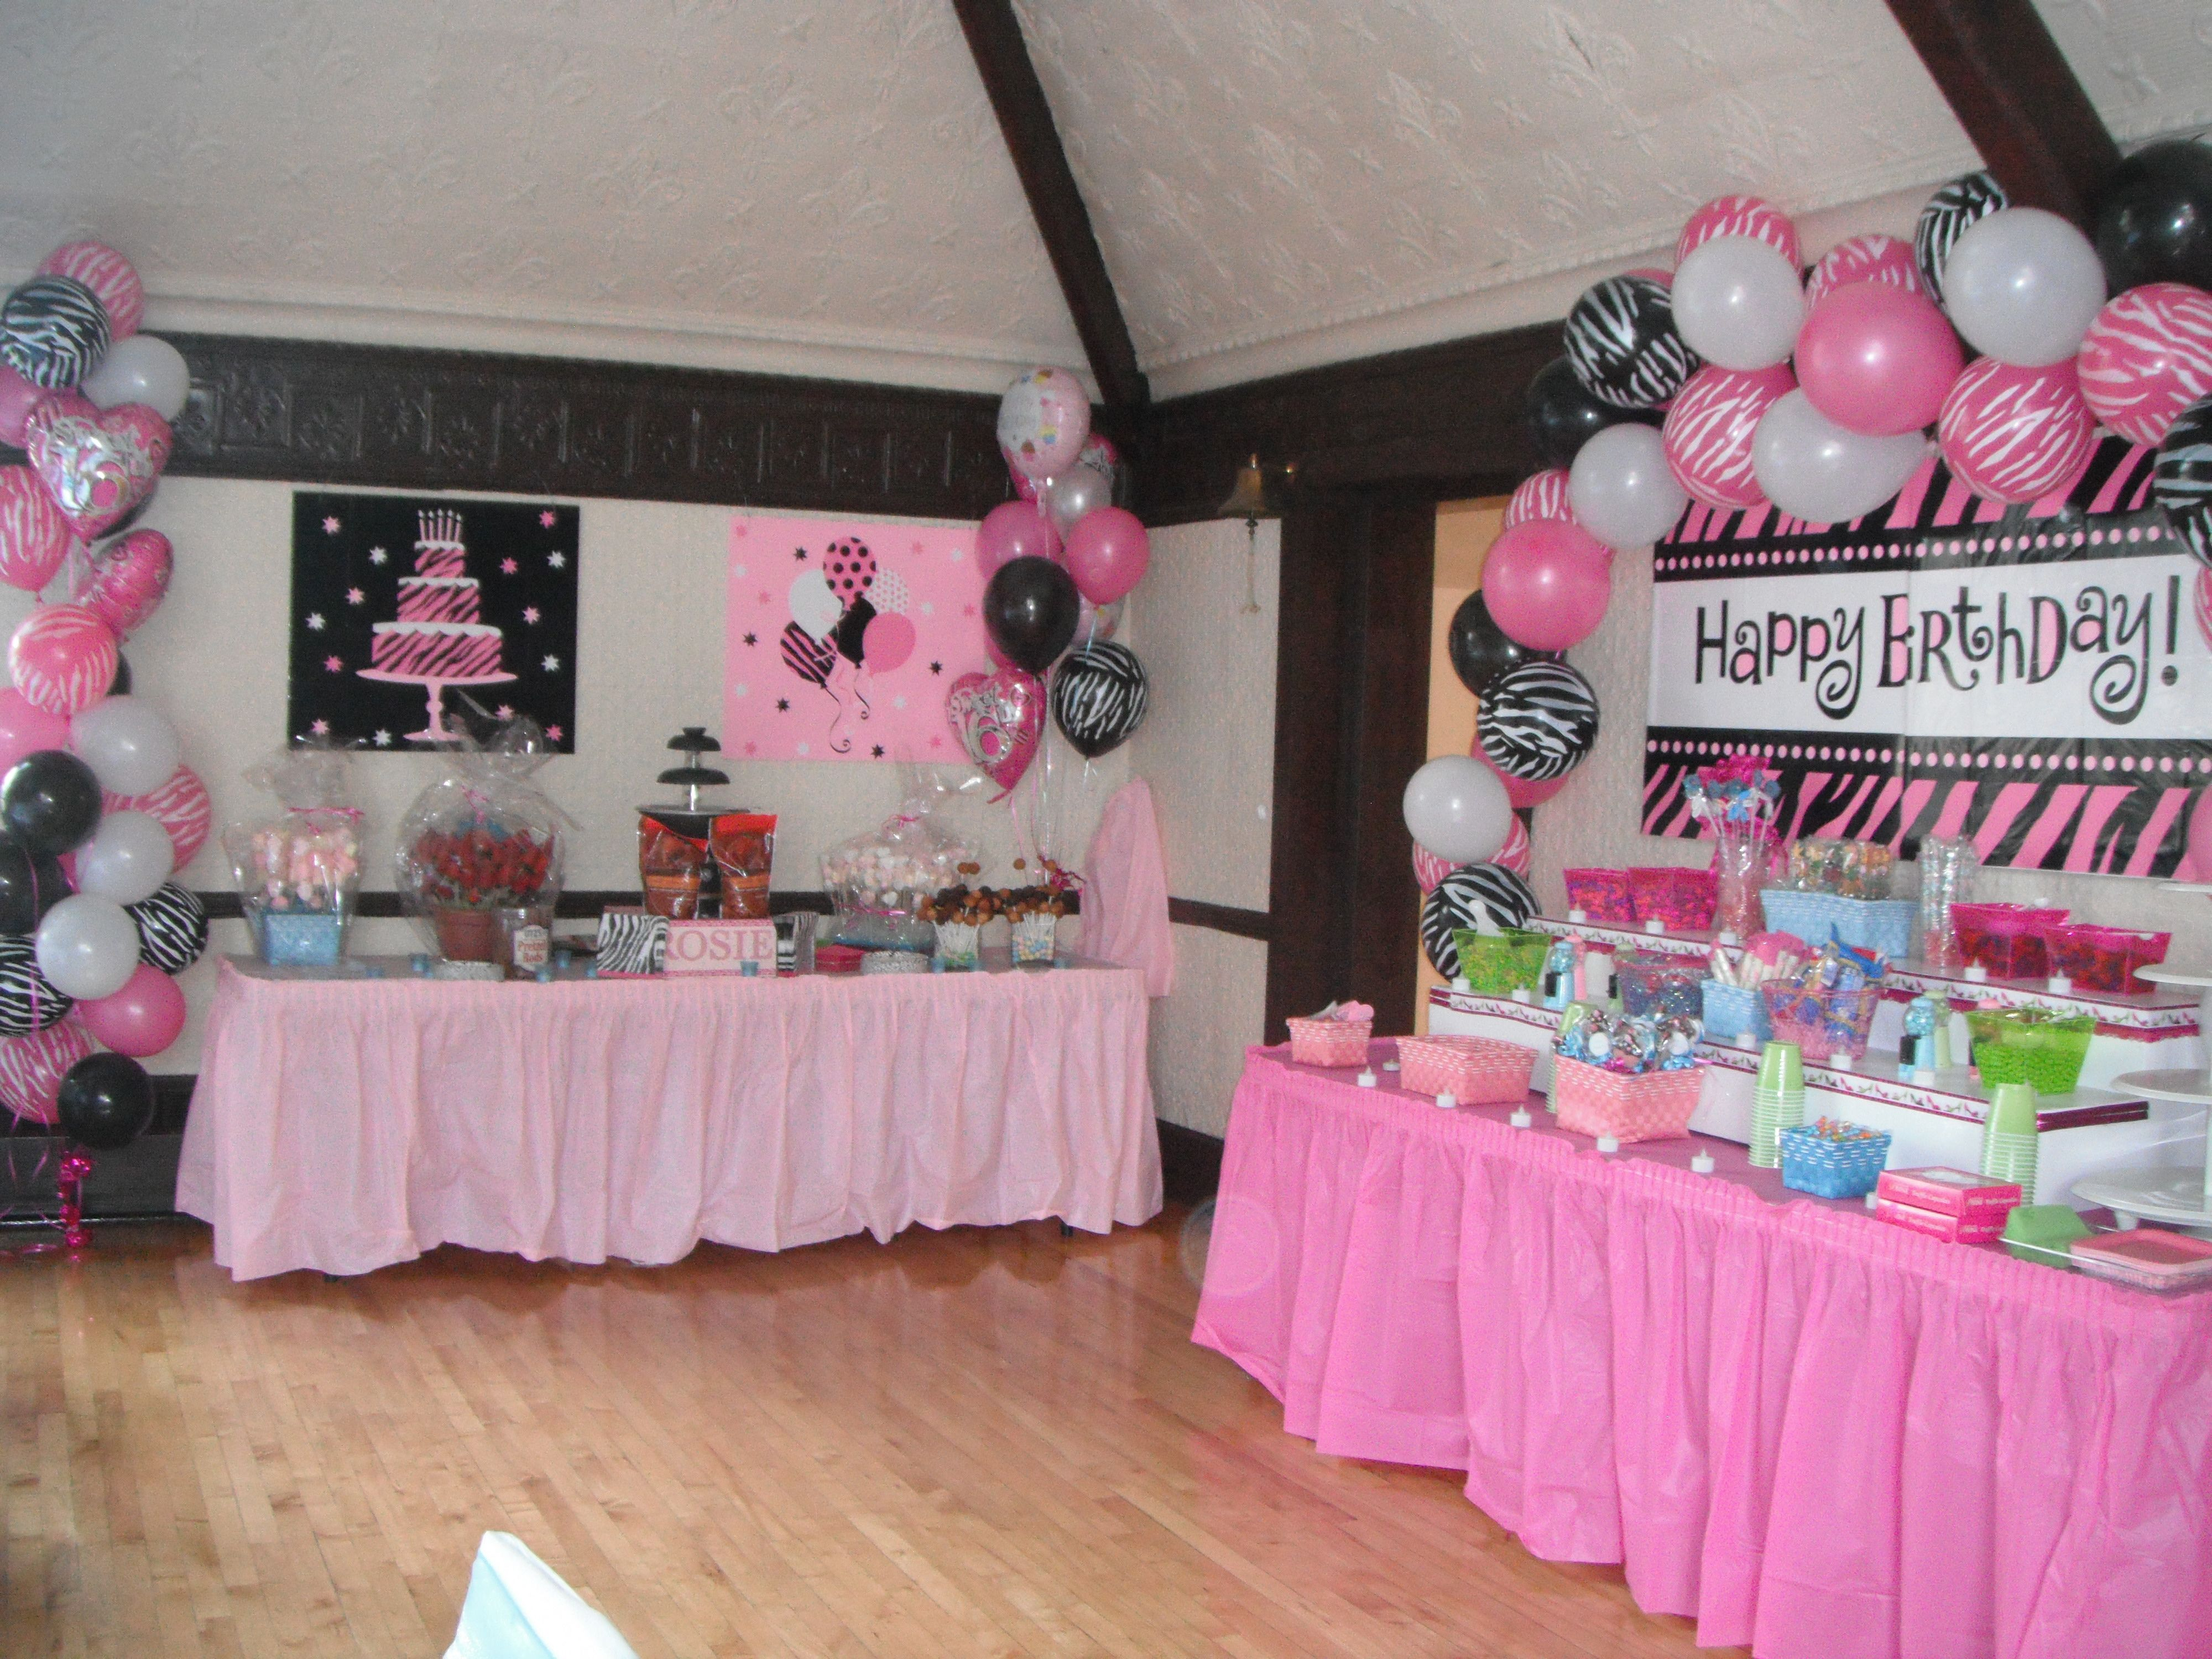 Rosie's Sweet 16 Party Decorations | Party Ideas | Sweet ...